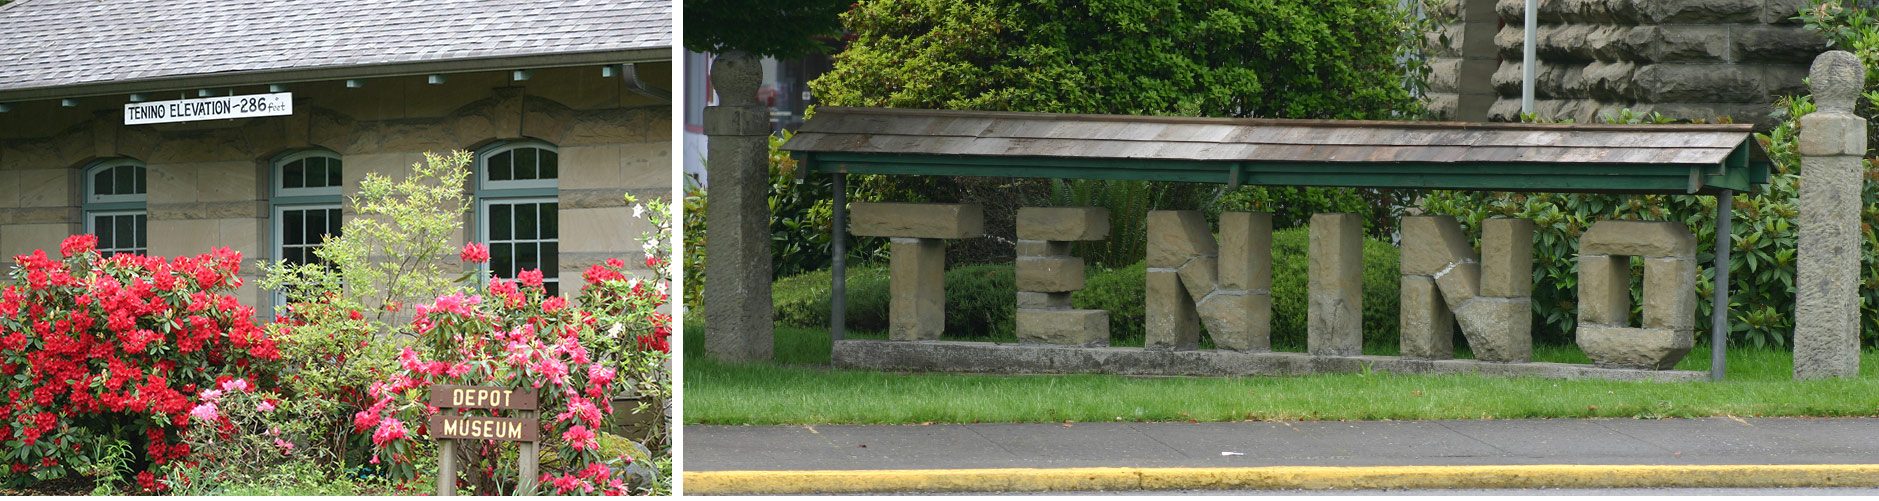 Train Depot and City Sign